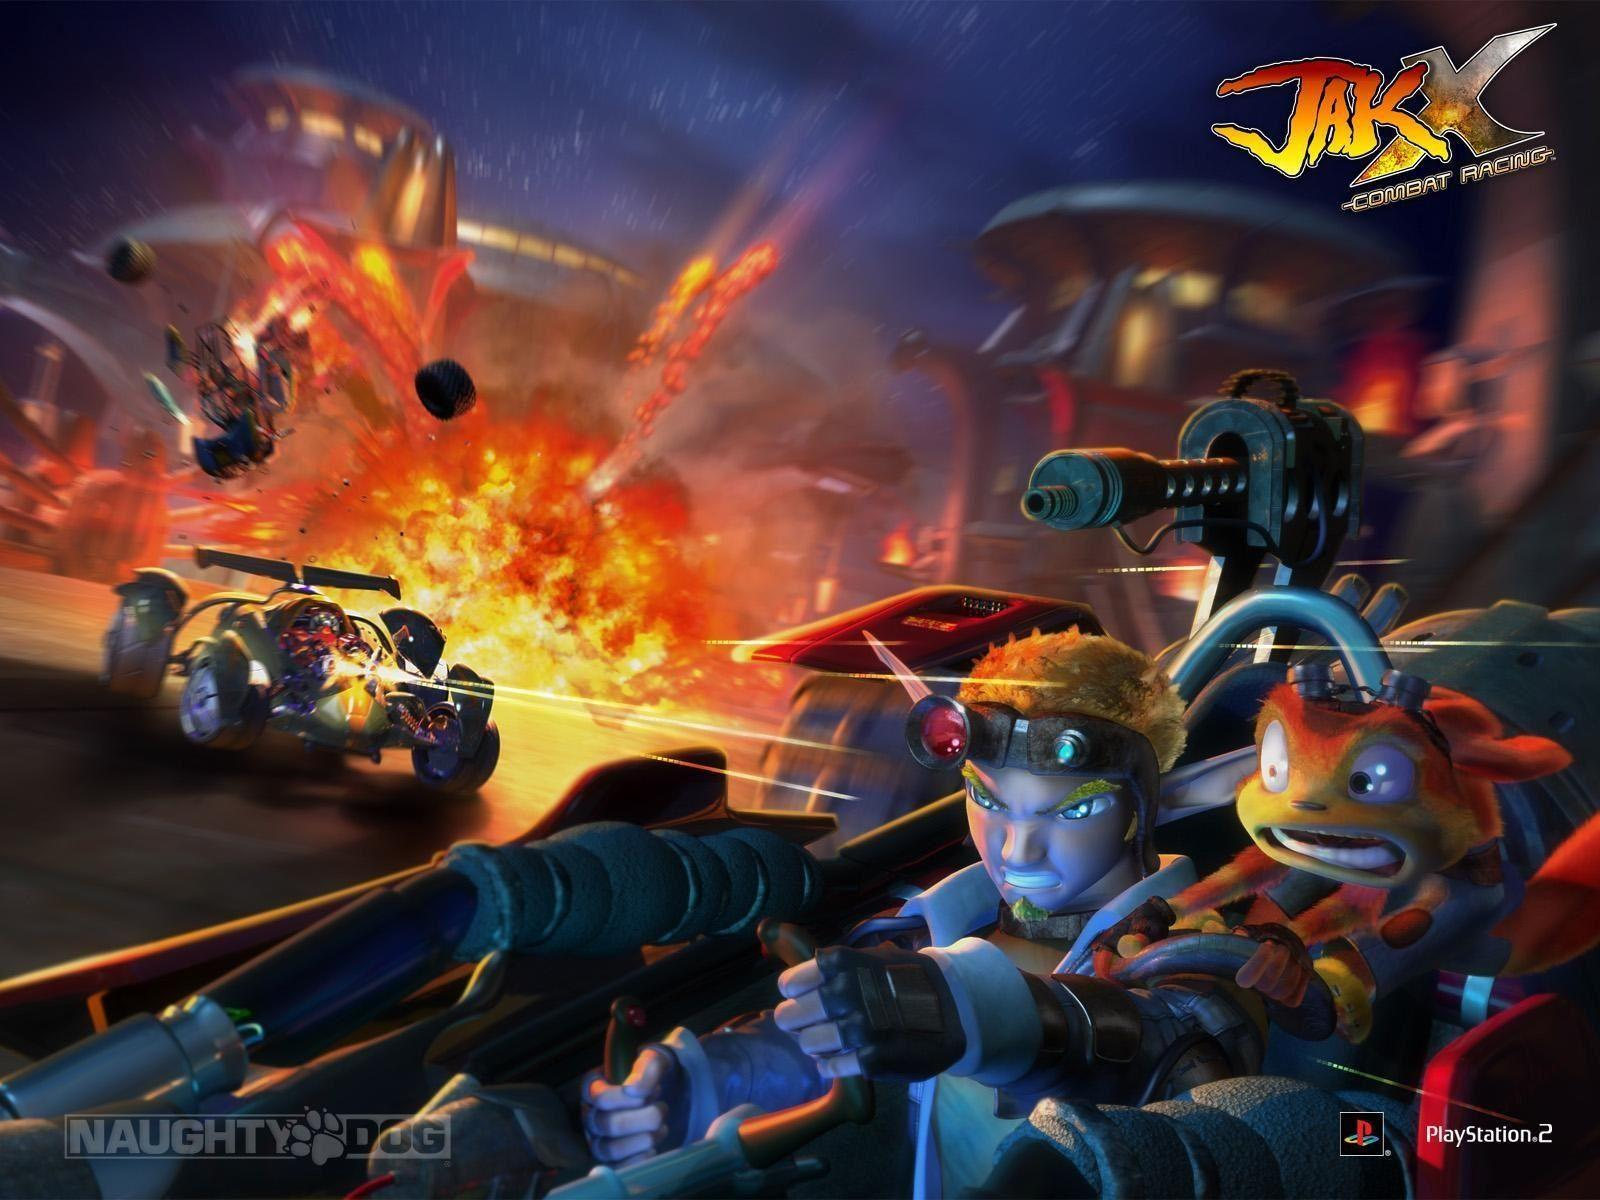 Race Car Anime Wallpaper Jak And Daxter Wallpapers Wallpaper Cave